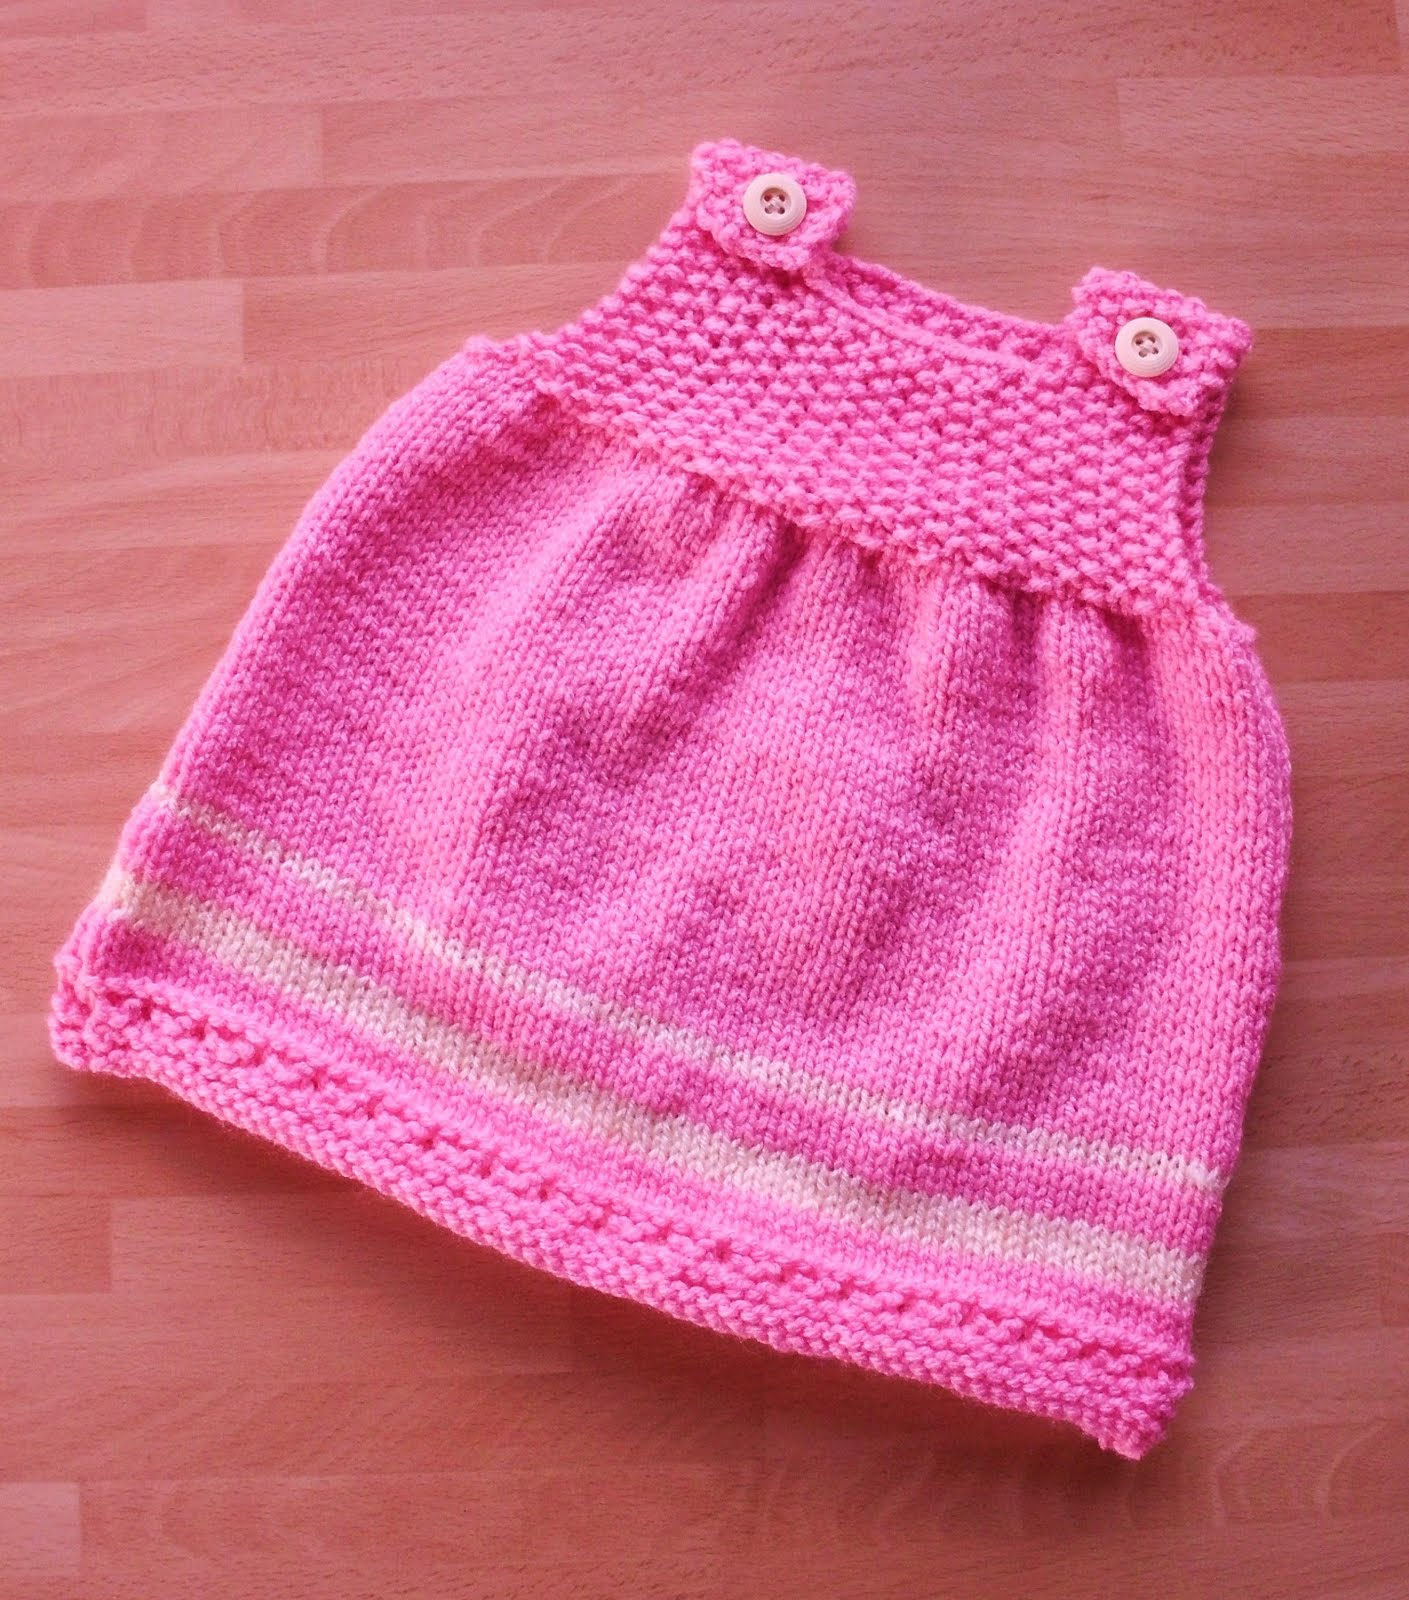 Simple Knit Dress Pattern : Great Balls of Wool: Pretty in pink baby dress...